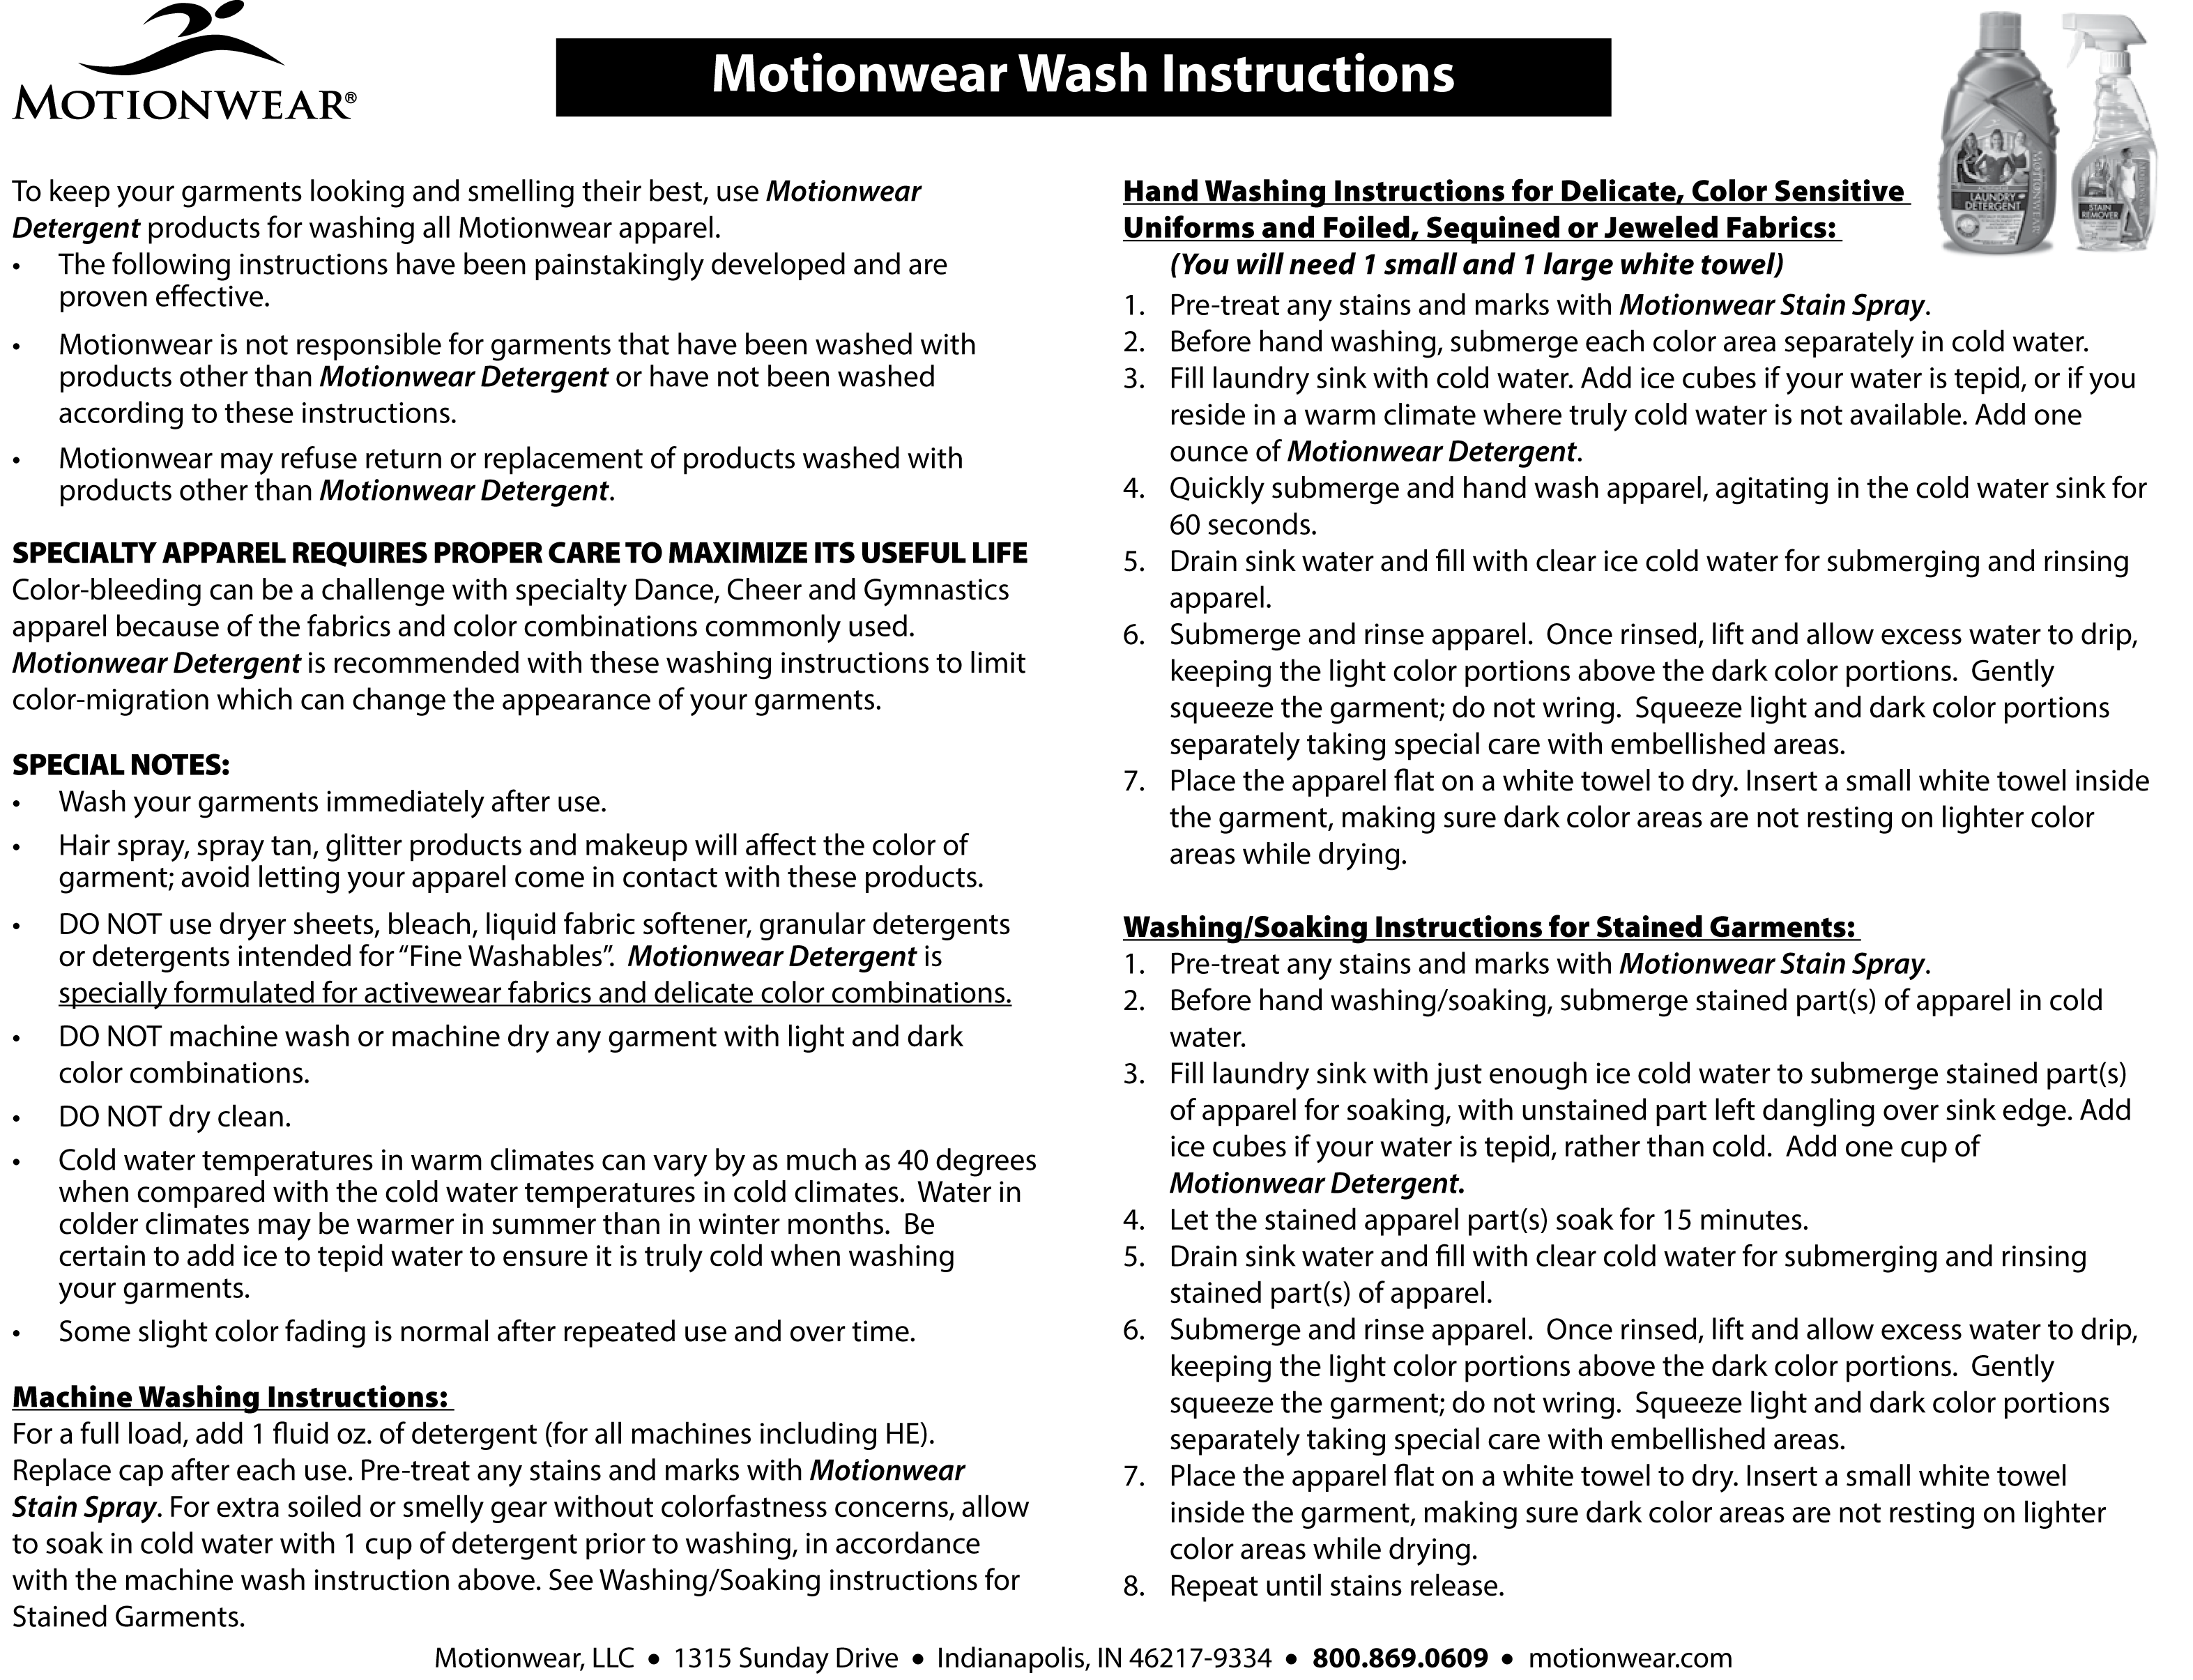 mw-fabric-care-wash-instructions-lowres.png